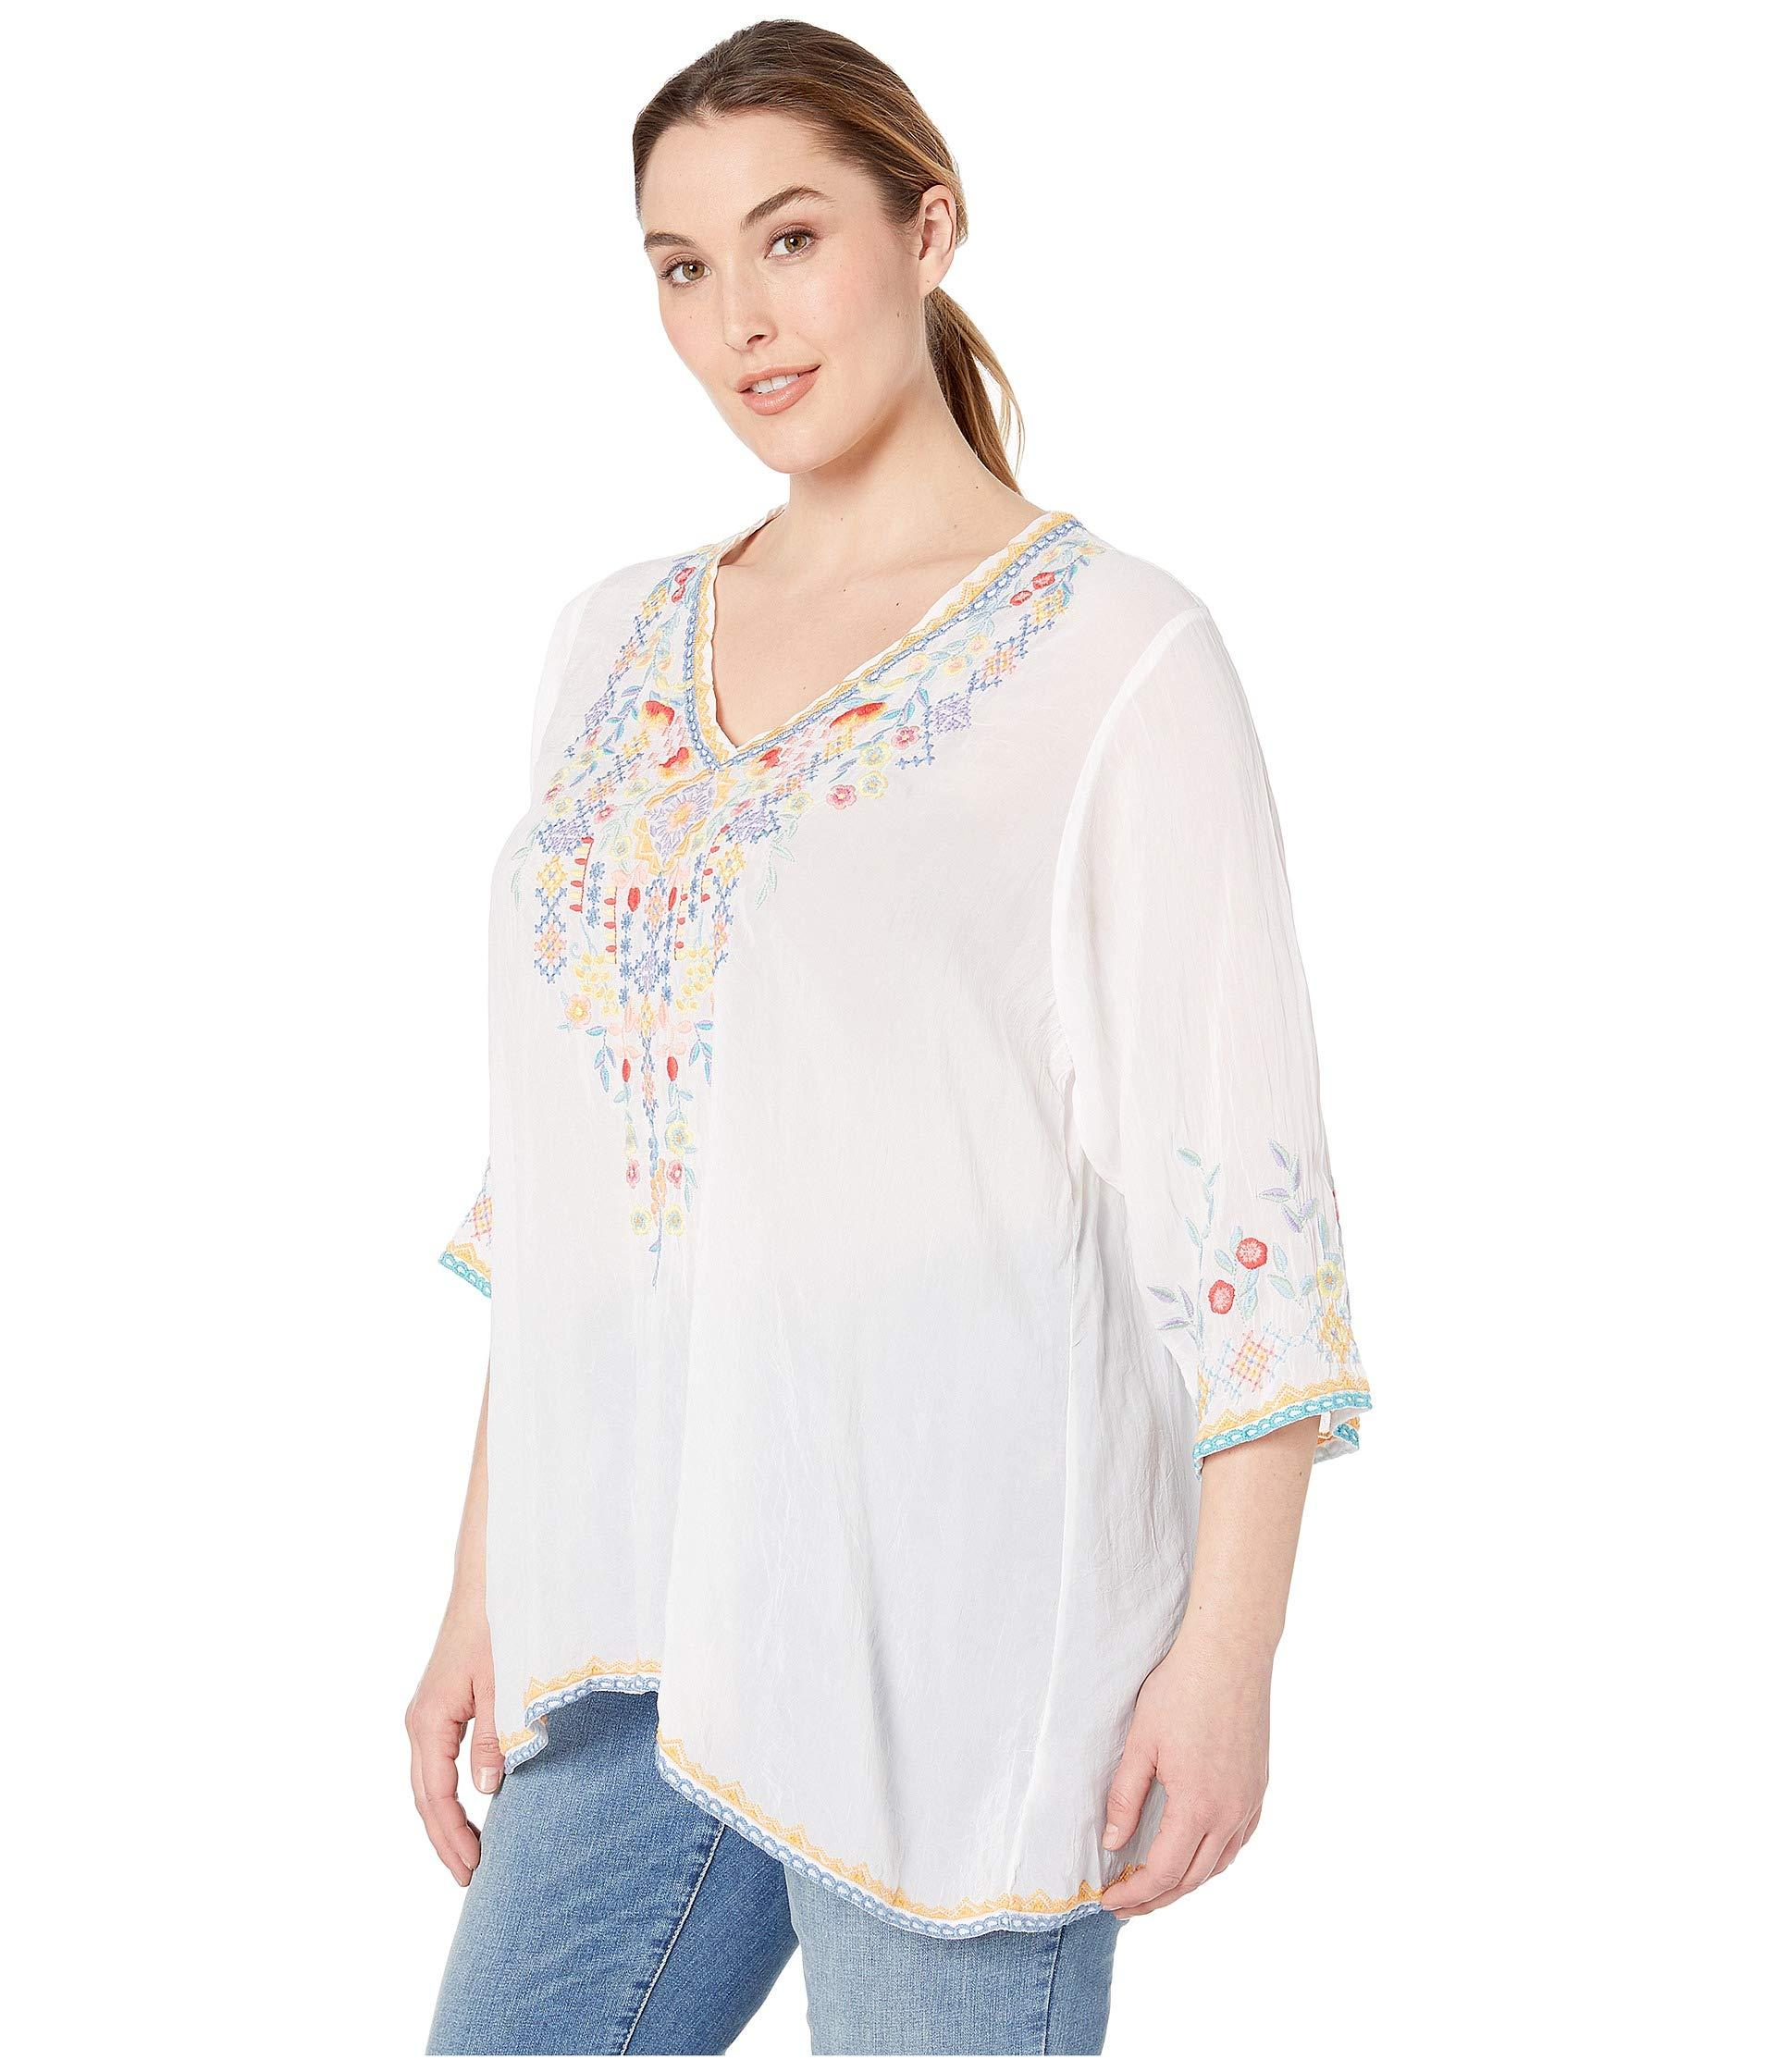 07be164b2f4cd Lyst - Johnny Was Plus Size Ryleigh Blouse (white) Women s Blouse in White